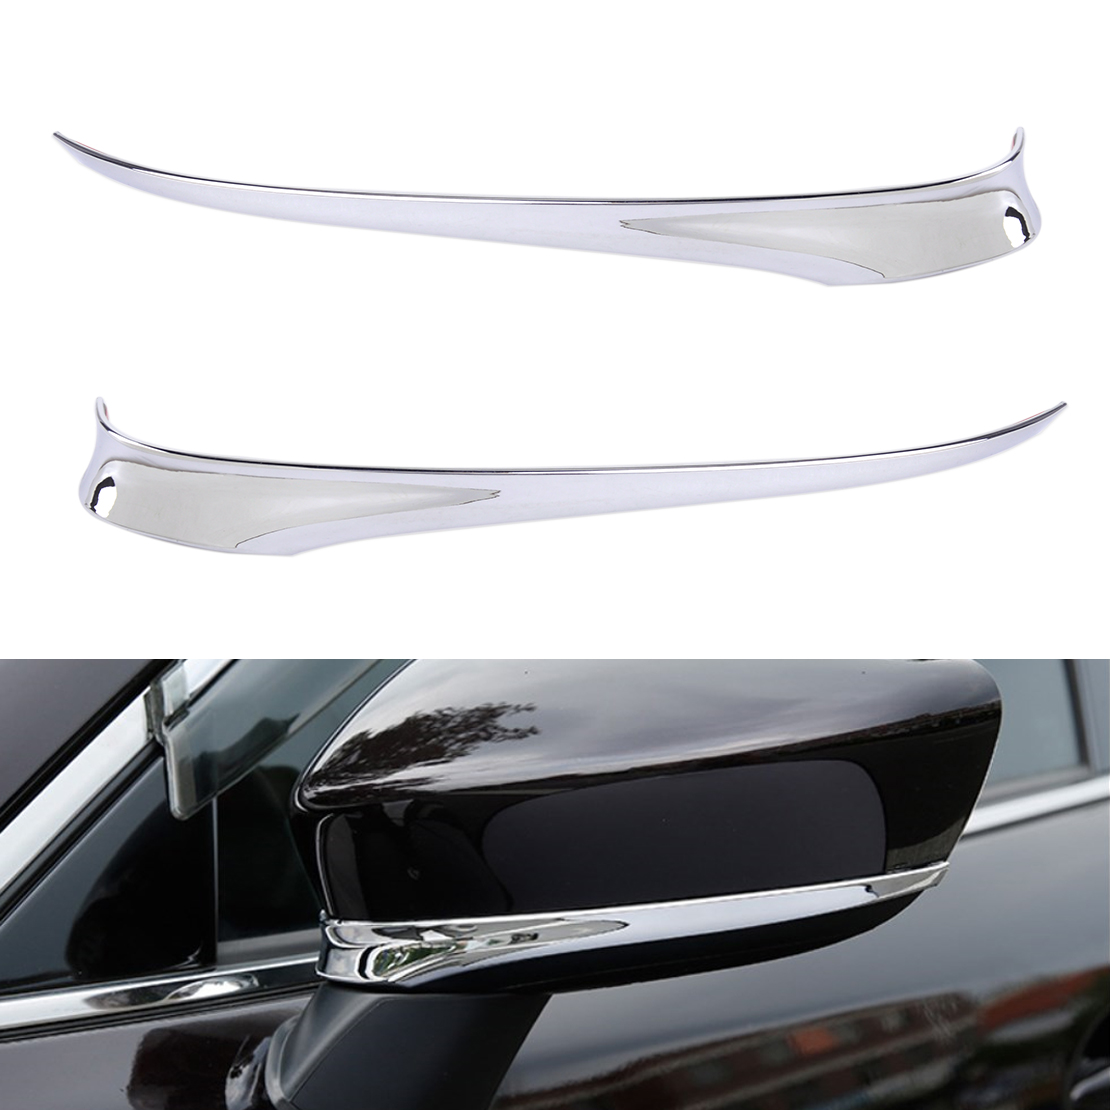 beler New Chrome Plated ABS Car Rearview Side Mirror Cover Trim Stipe Strip Fit for Mazda 6 Atenza 2014 2015 2016 2017 chromesupply mazda 2 demio chrome side mirror cover with led side blinker trim